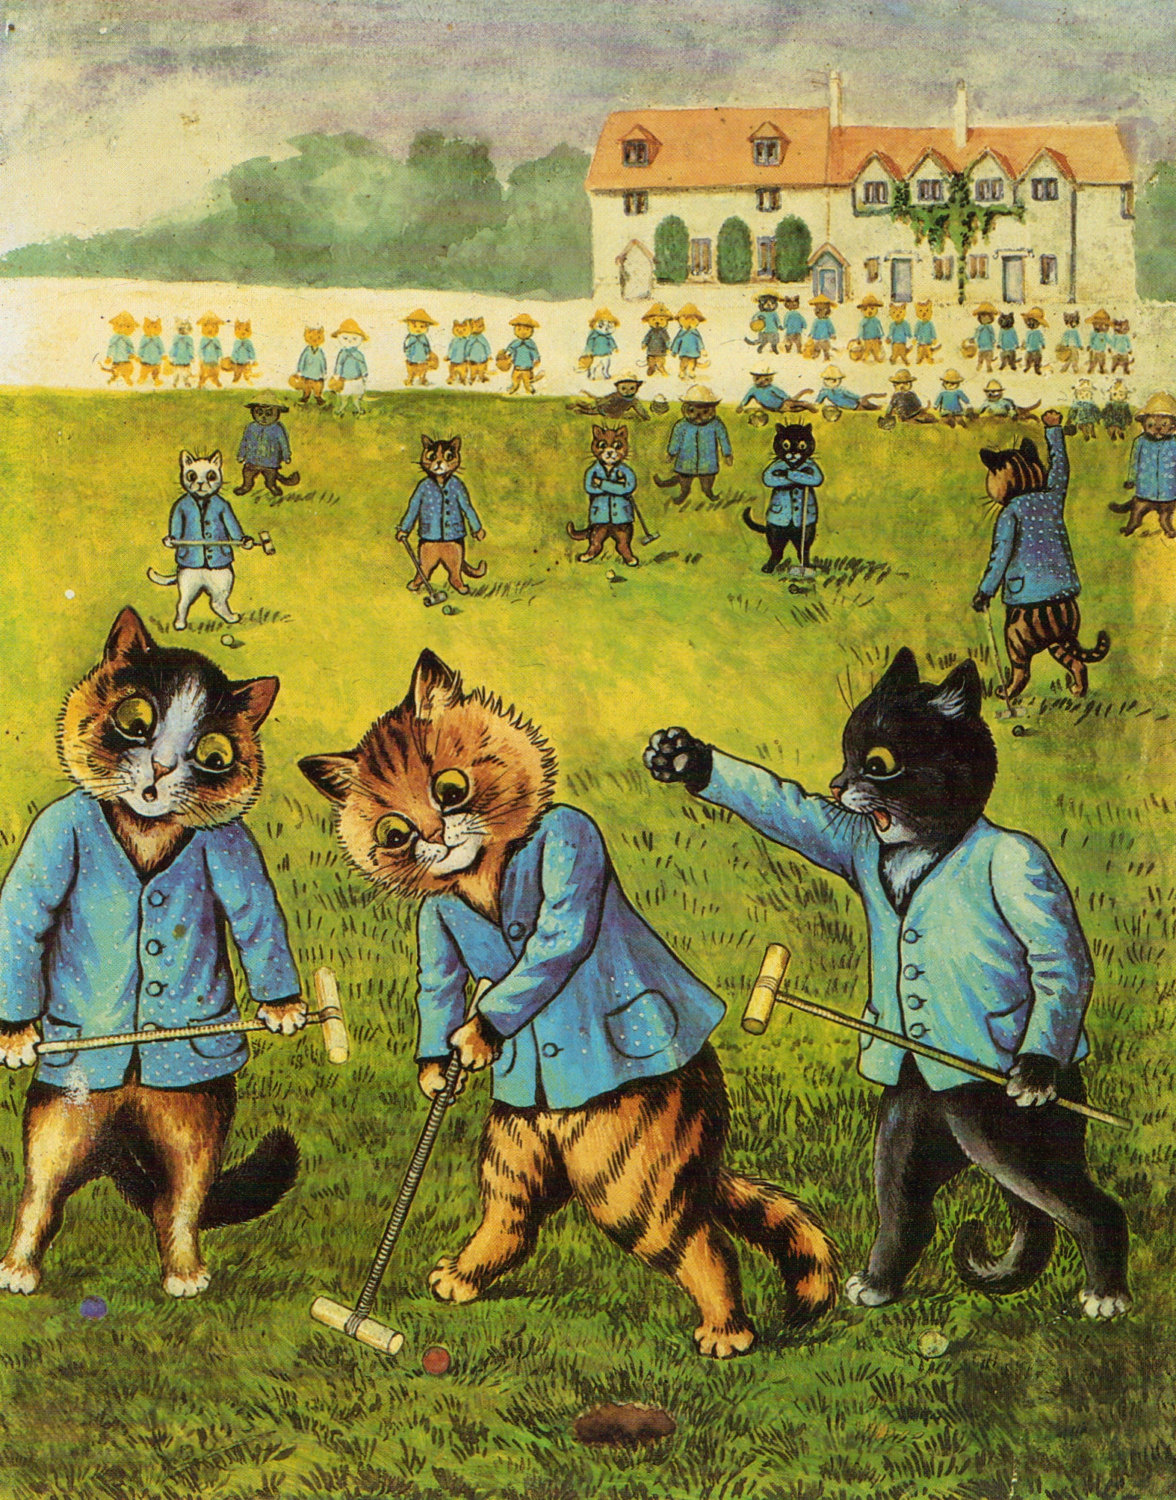 e926 ambiguous_gender anthro ball barefoot biped black_fur bottomless brown_fur building cat clothed clothing croquet croquet_mallet crossed_arms crowd detailed_background digitigrade feline fur grass grey_pawpads group hammer hat hi_res holding_object hole_(pit) license_info looking_down louis_wain mammal mixed_media open_mouth outside painting_(artwork) pawpads public_domain raised_arm reclining semi-anthro sky sport standing striped_fur stripes tools traditional_media_(artwork) watercolor_(artwork) whiskers white_fur yellow_eyes